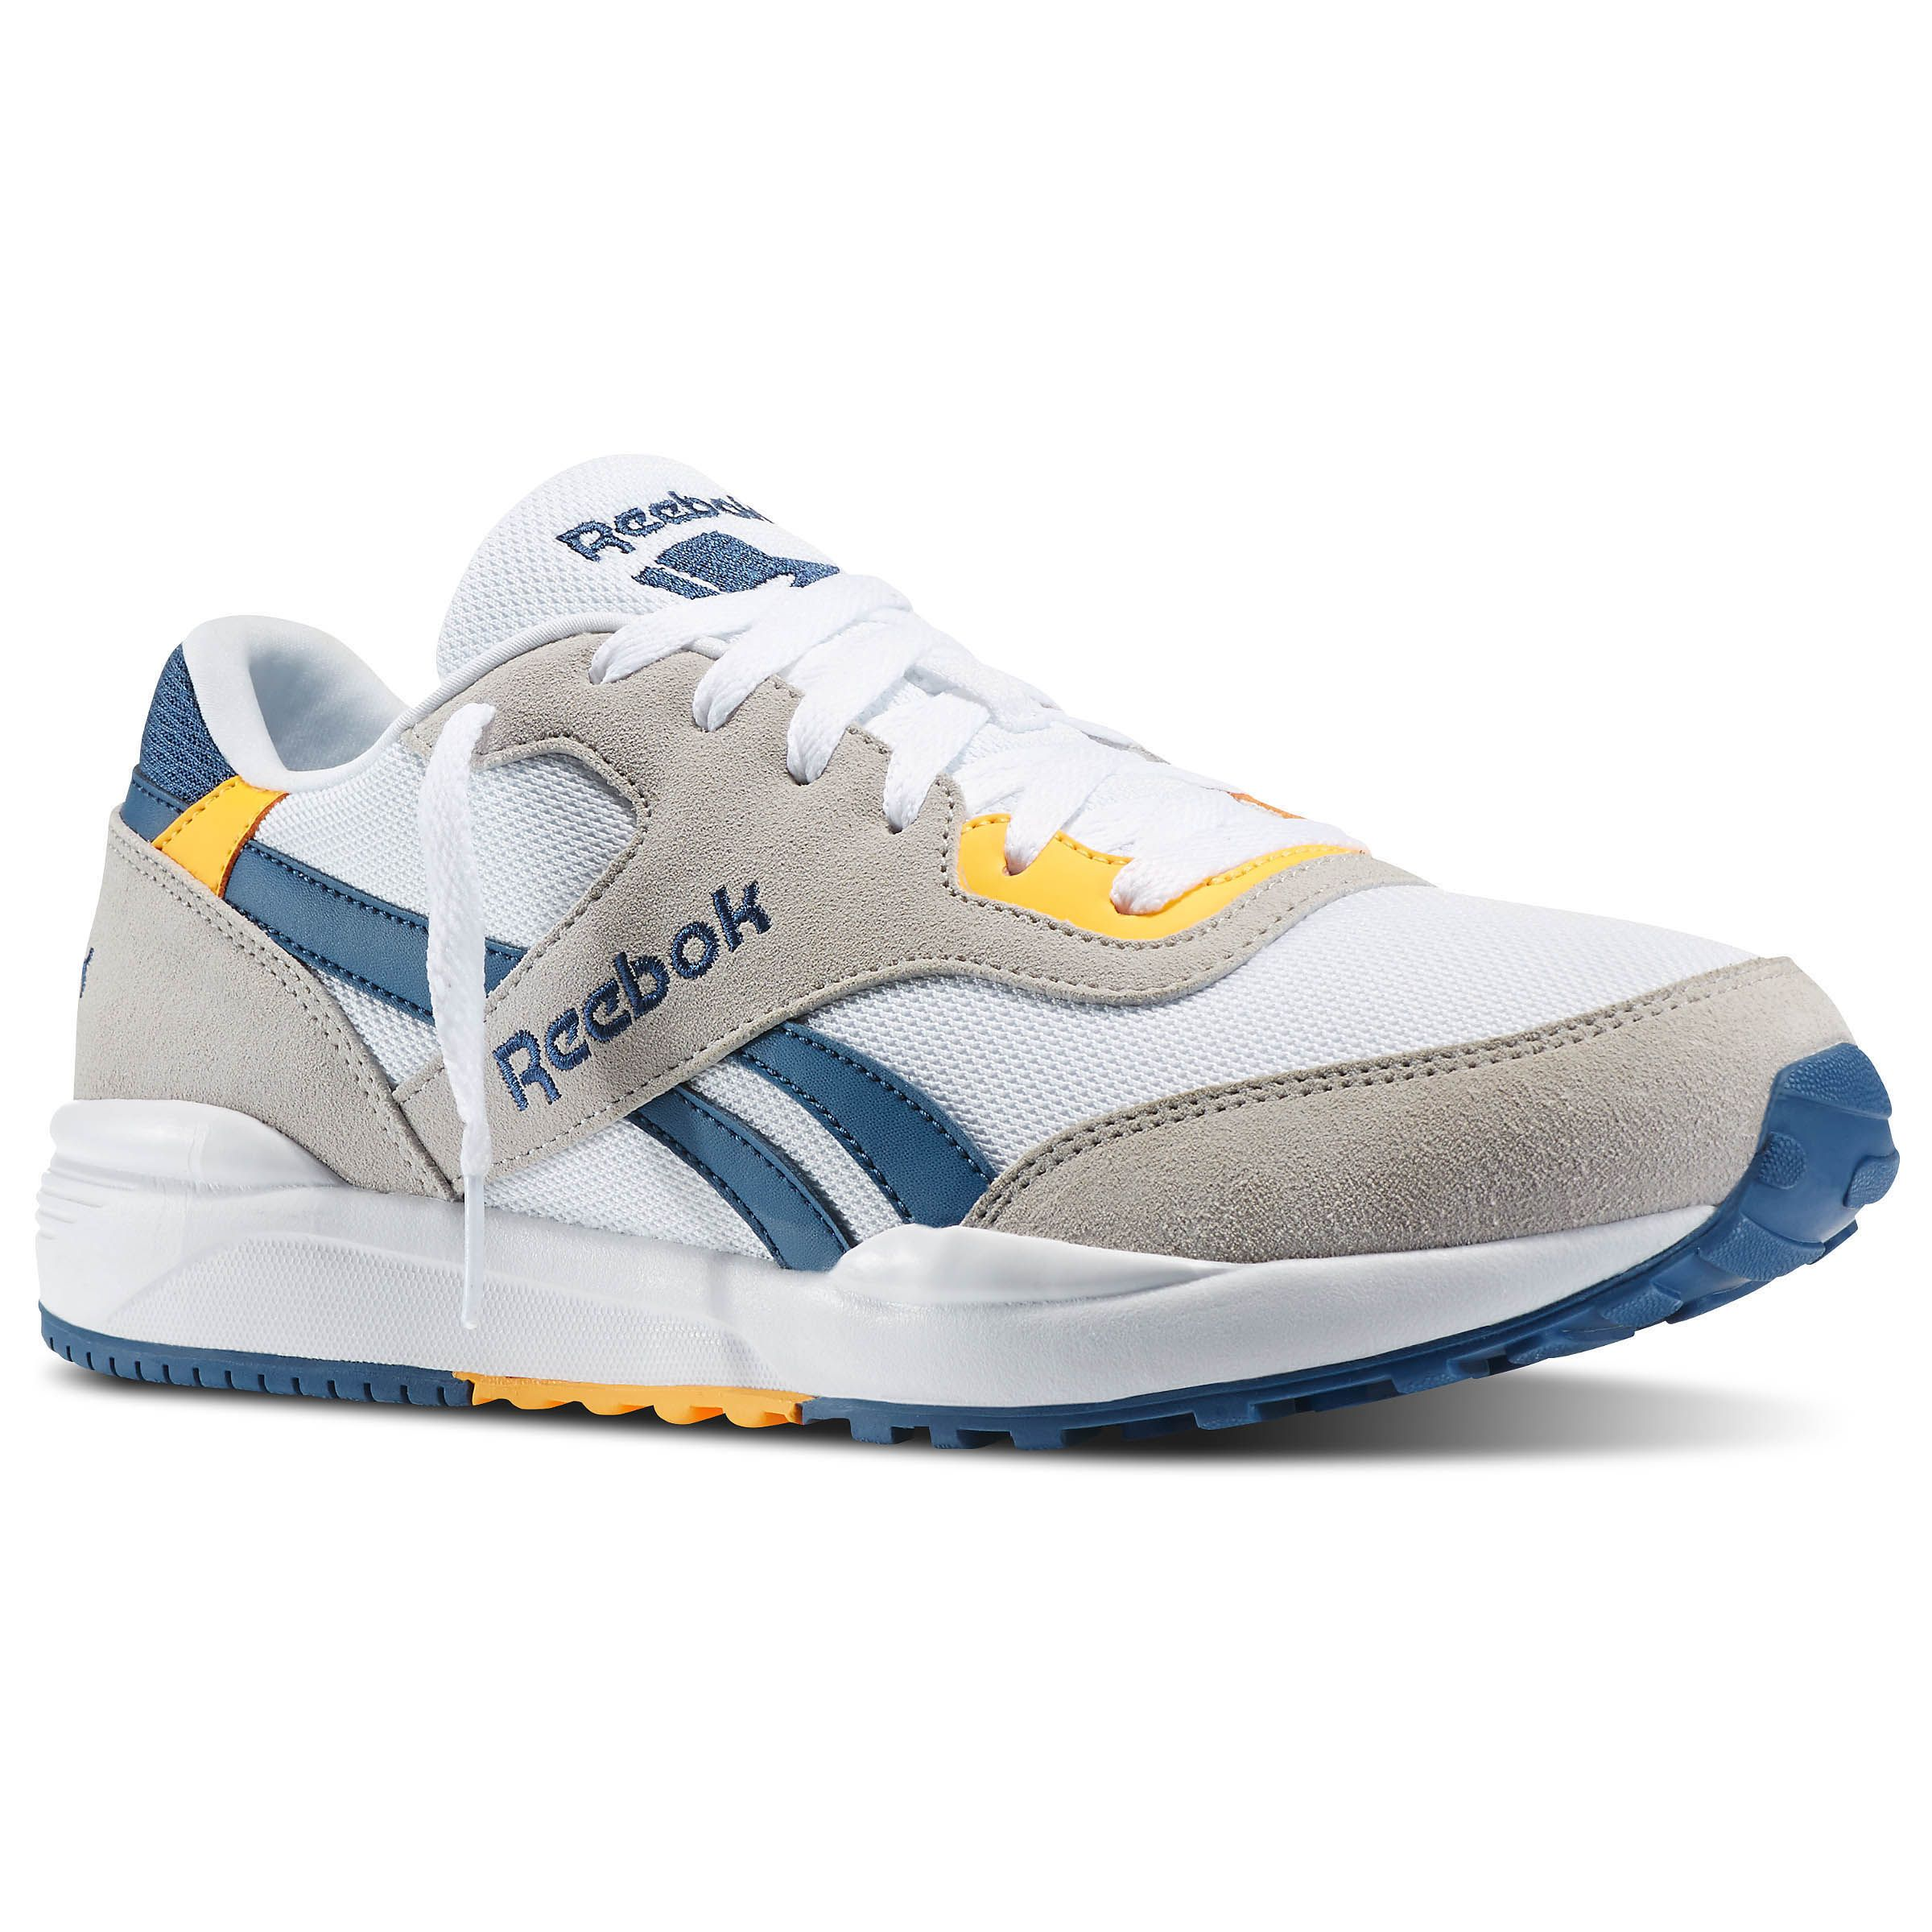 Comfort and fashion collide in the Reebok Royal Chase. Thanks to a mix of  color